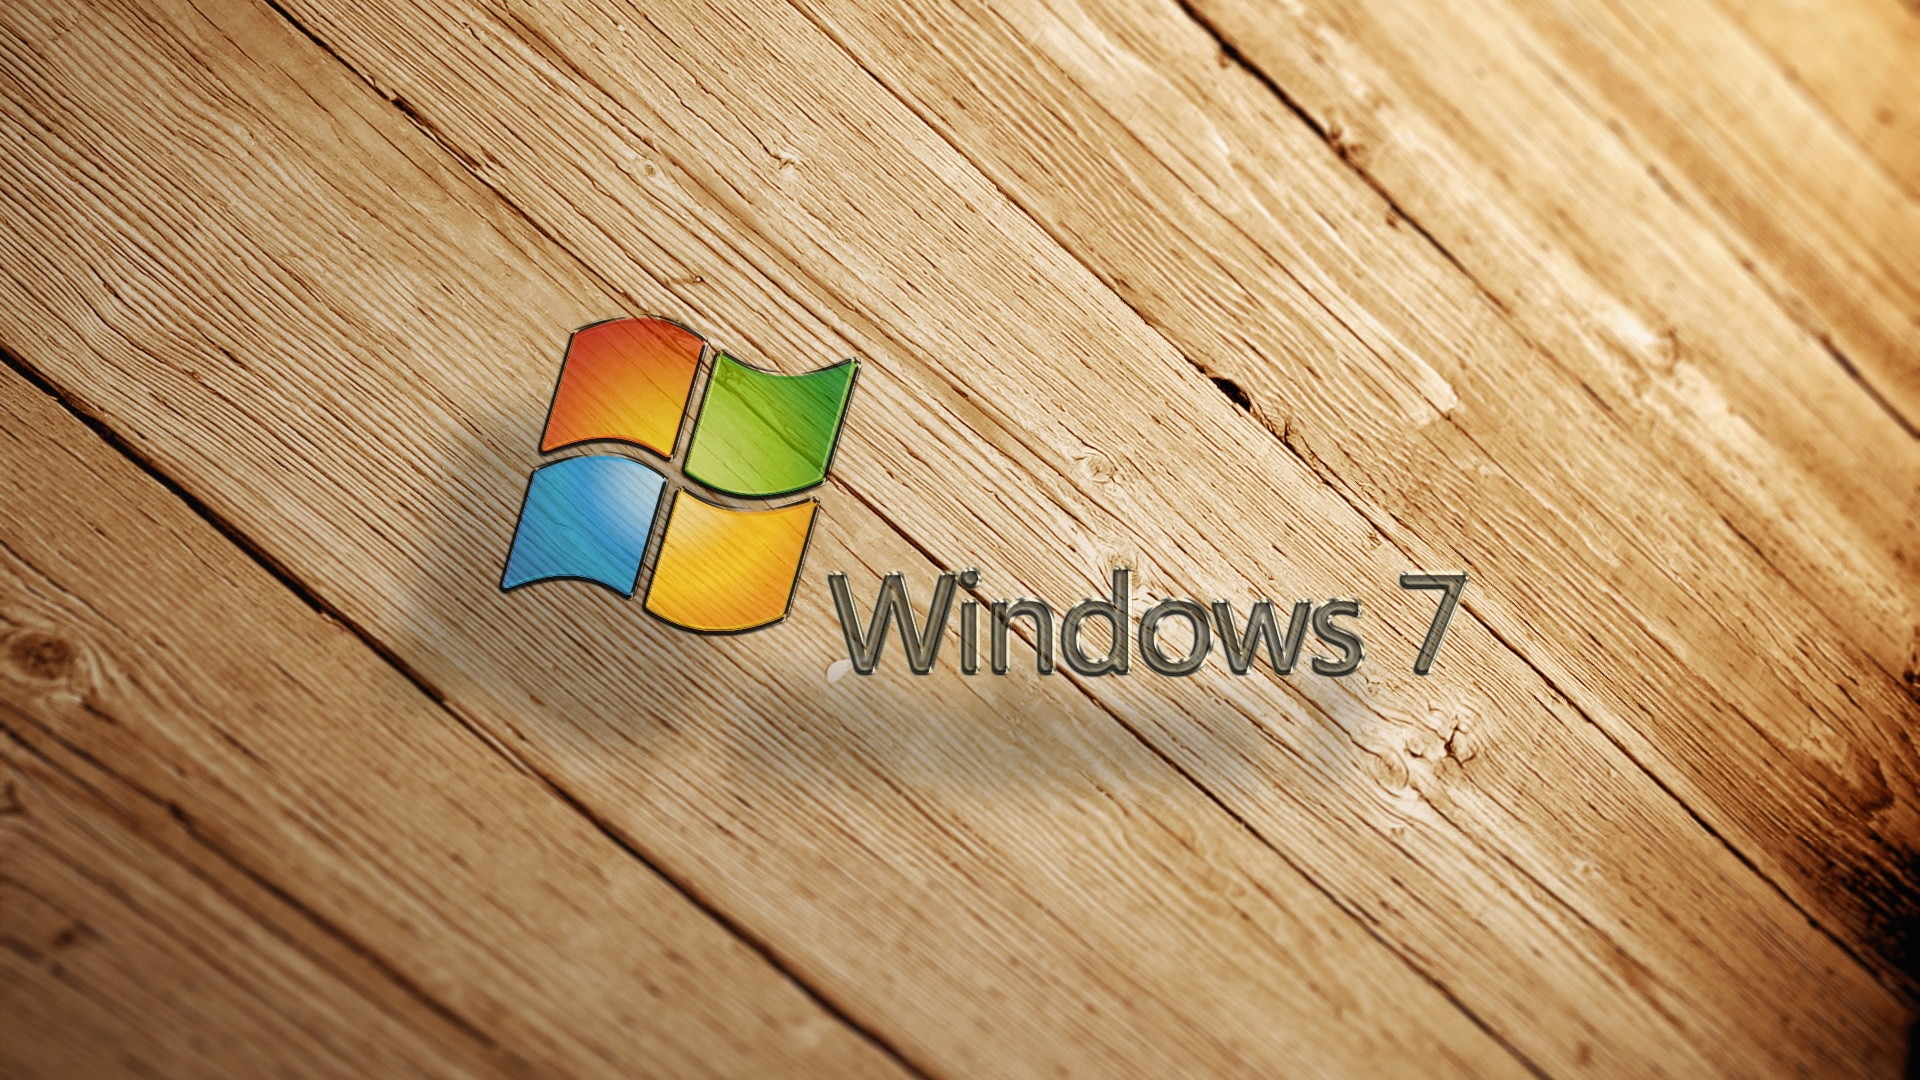 Windows 7 Wallpapers HD (80+ Images